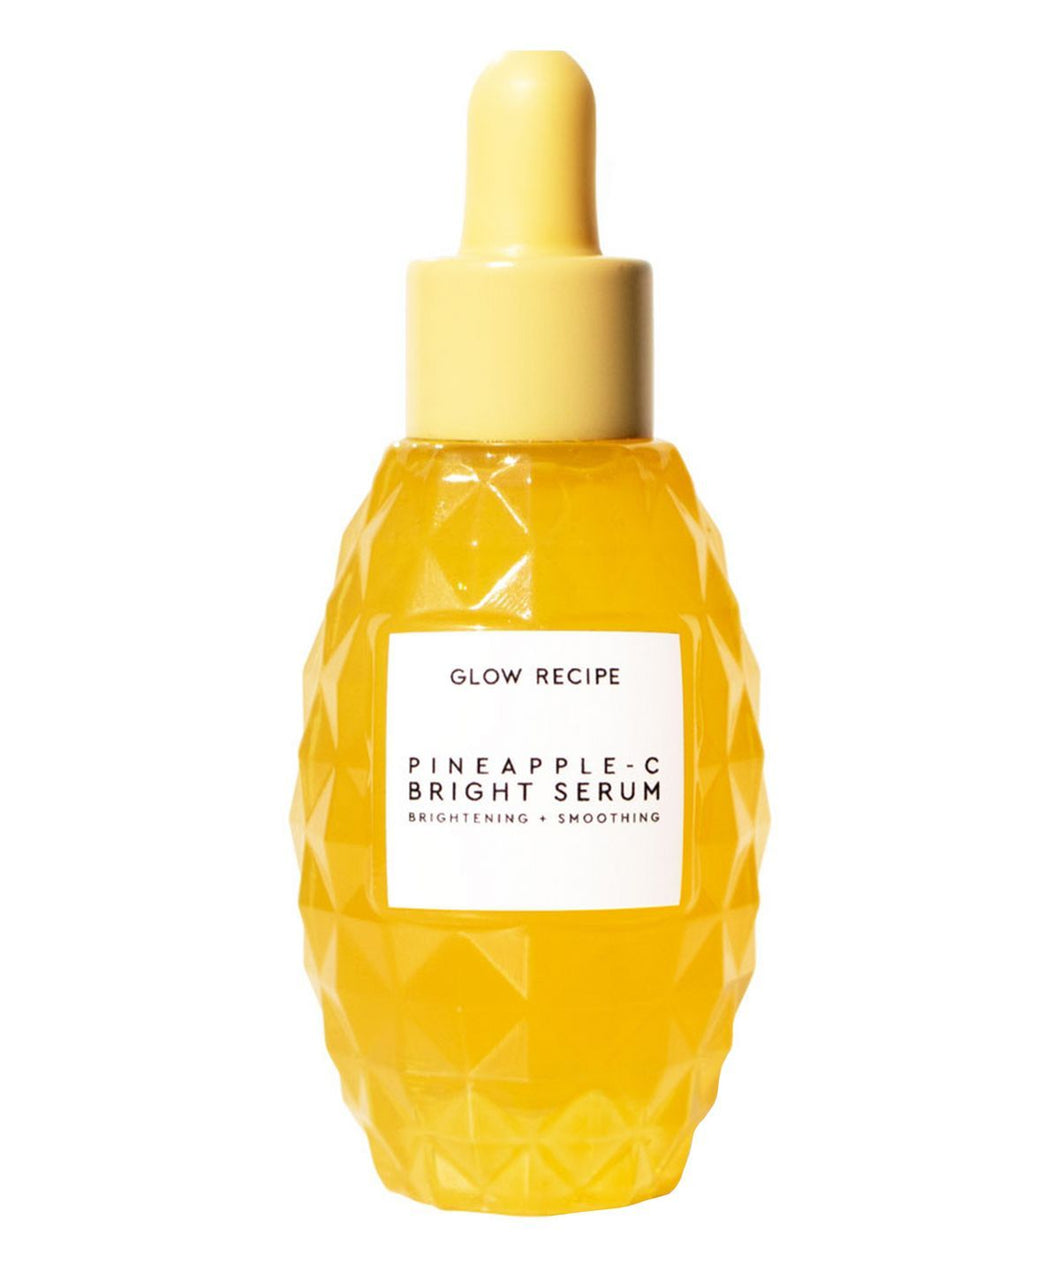 Glow Recipe Glass Skin Secret Pineapple-C Bright Serum( 30ml ) in Dubai, Abu Dhabi and all UAE at Shopey